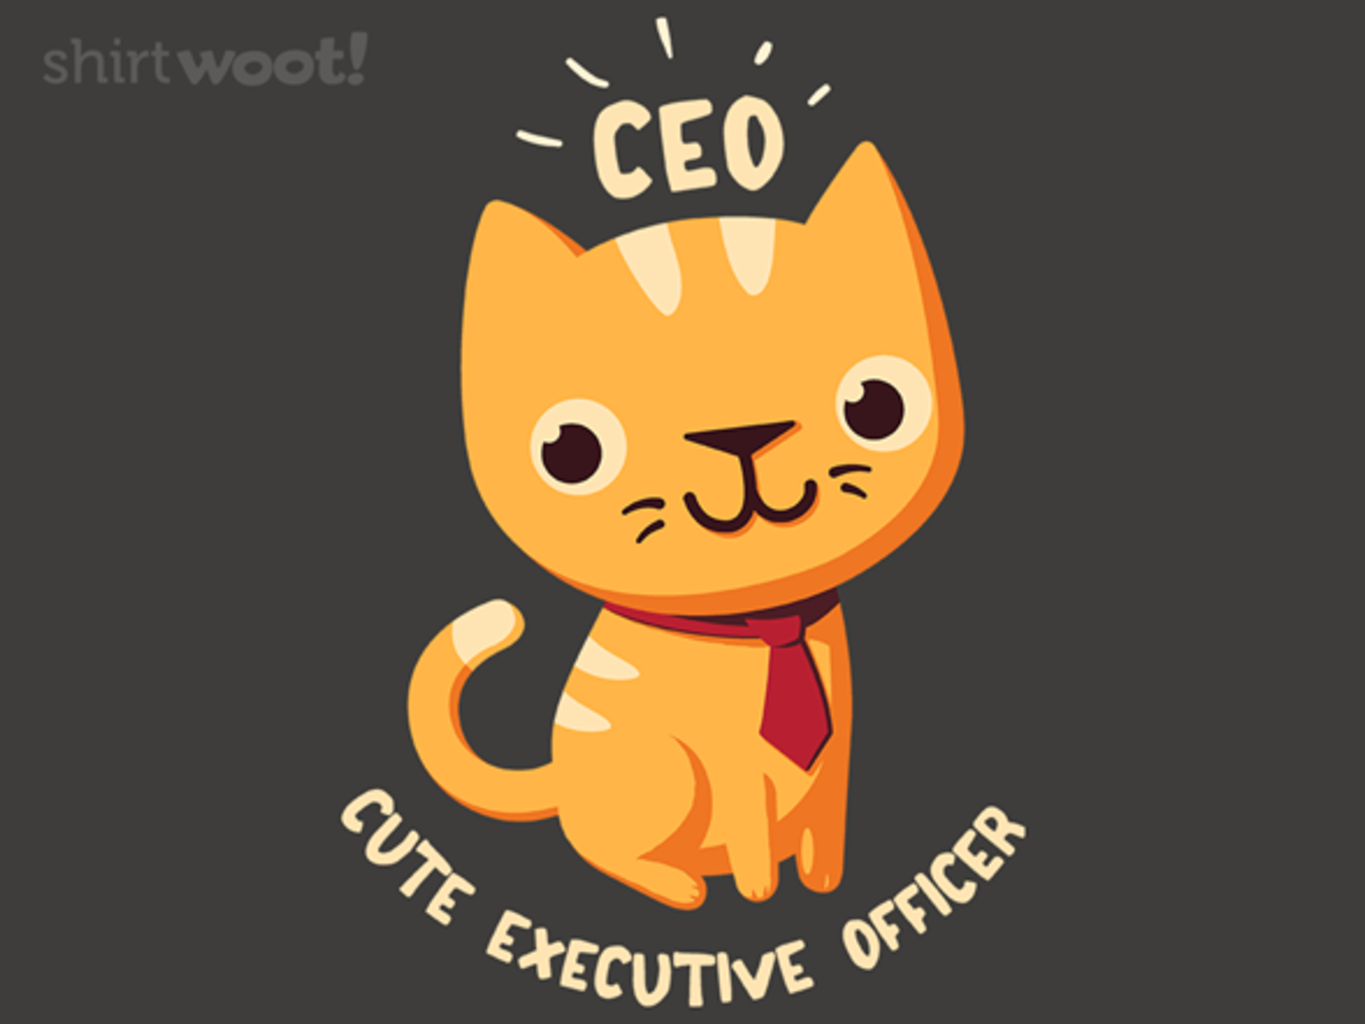 Woot!: Cute Executive